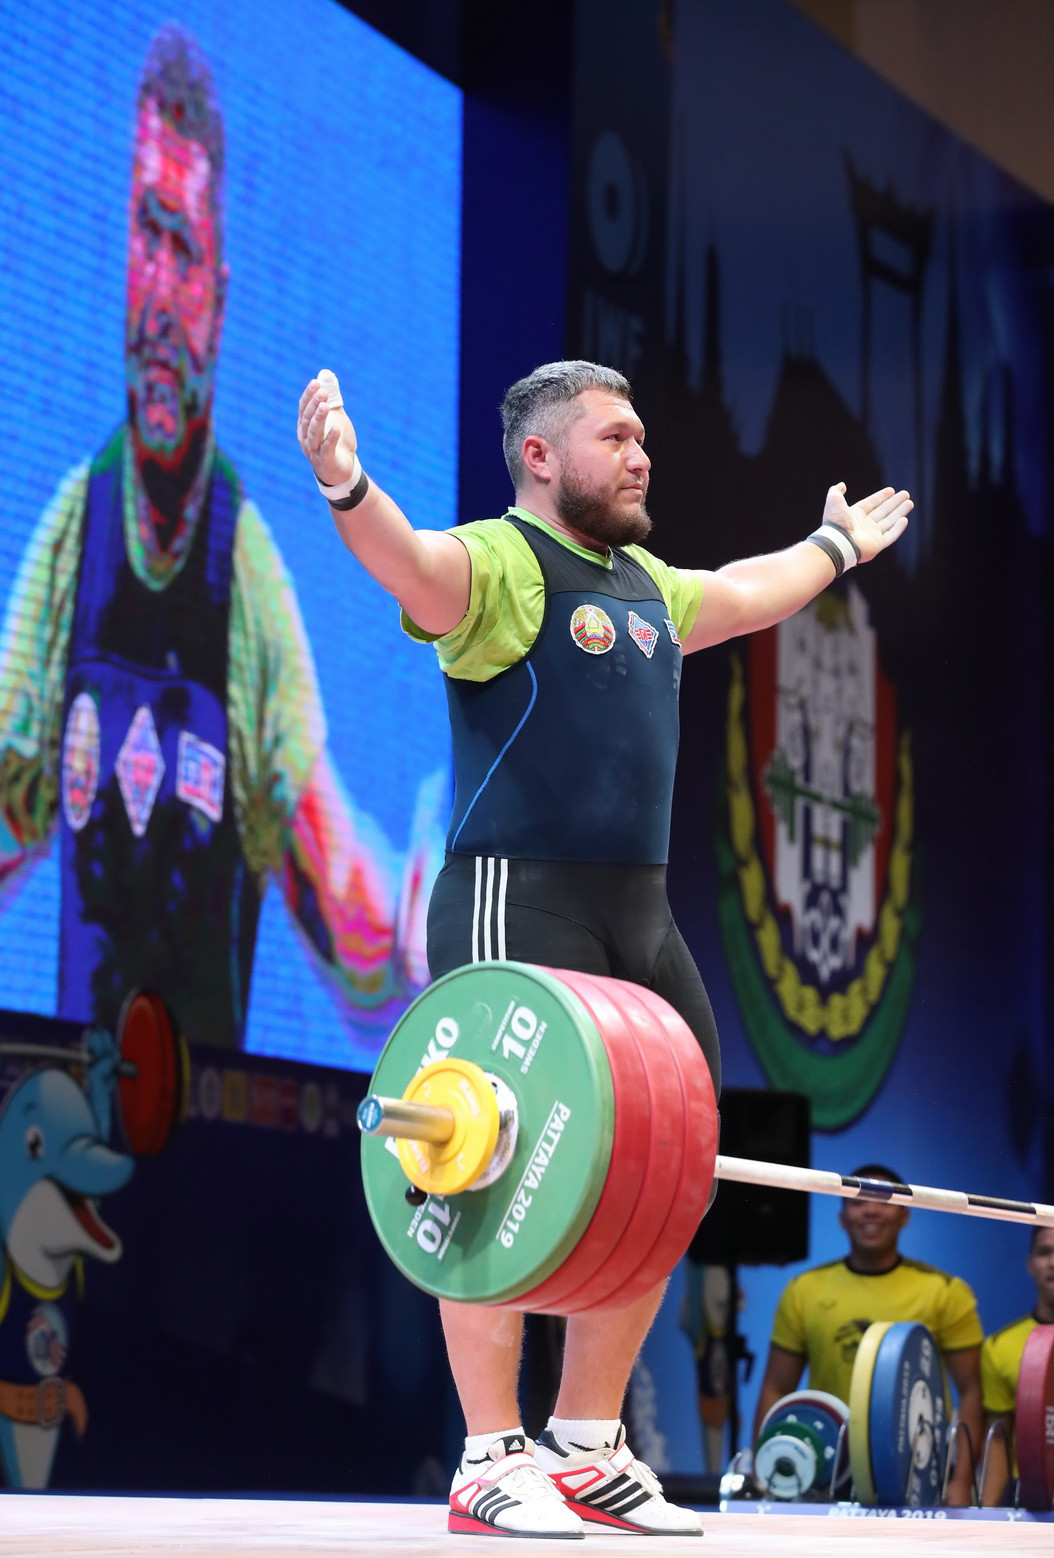 Belarus' Andrei Aramnau was the runner-up in the total ©IWF